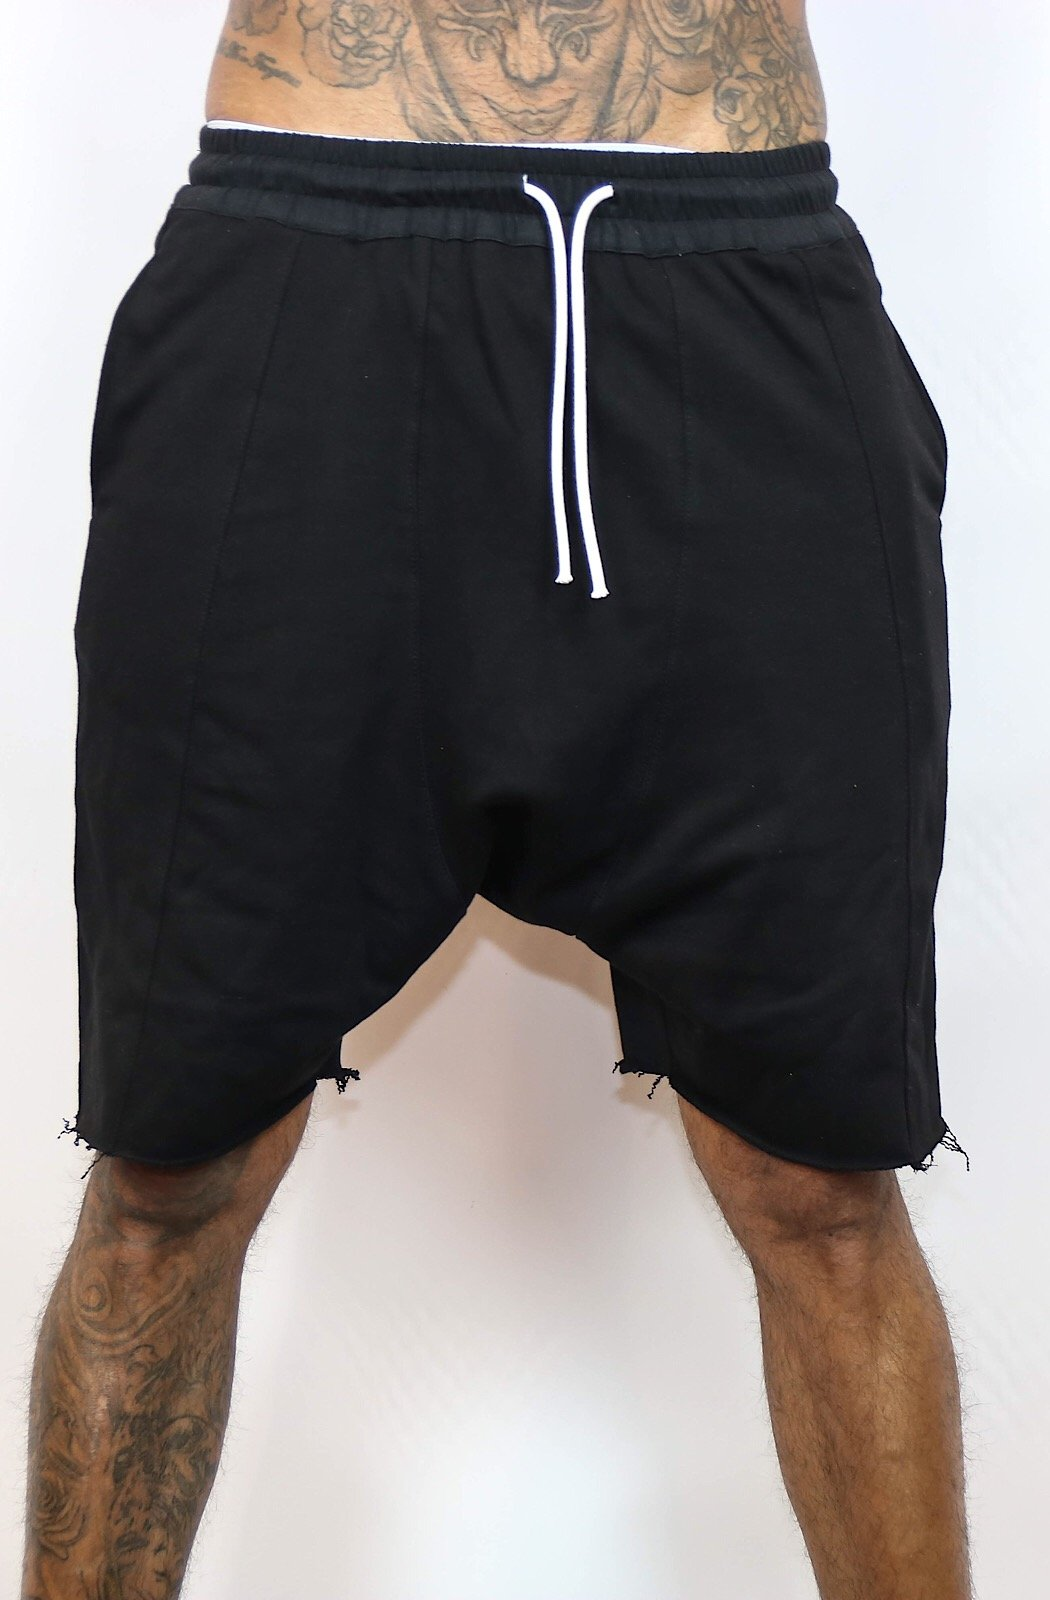 Drop Crotch | Poket Roket Apparel